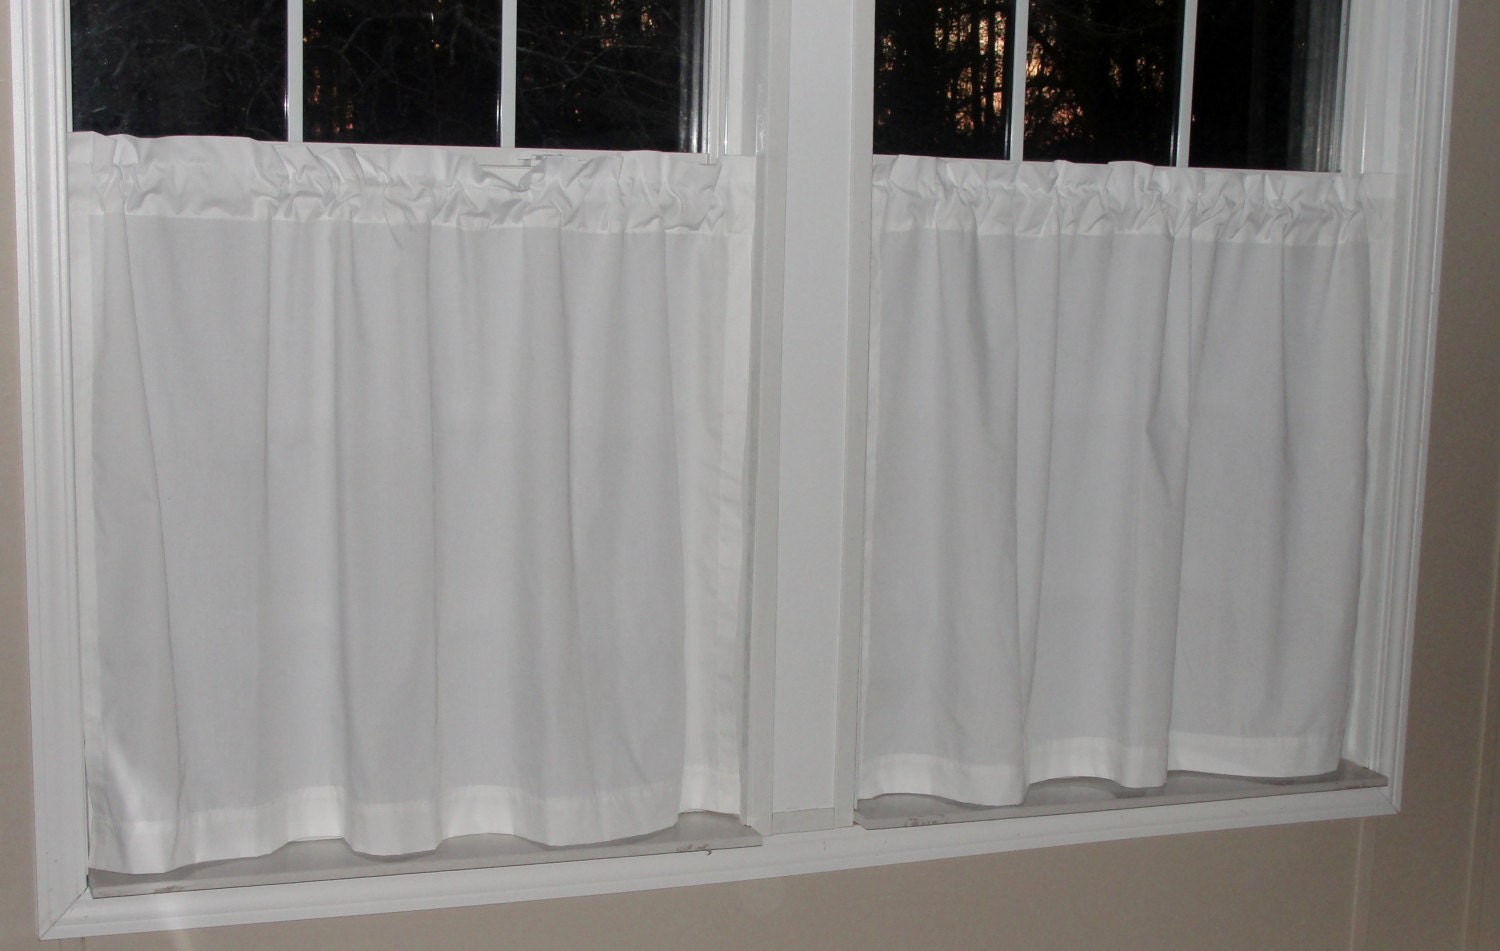 Kitchen cafe curtain patterns - Kaufman Premium Kona All White Cafe Curtains 80 Wide X 30 Long